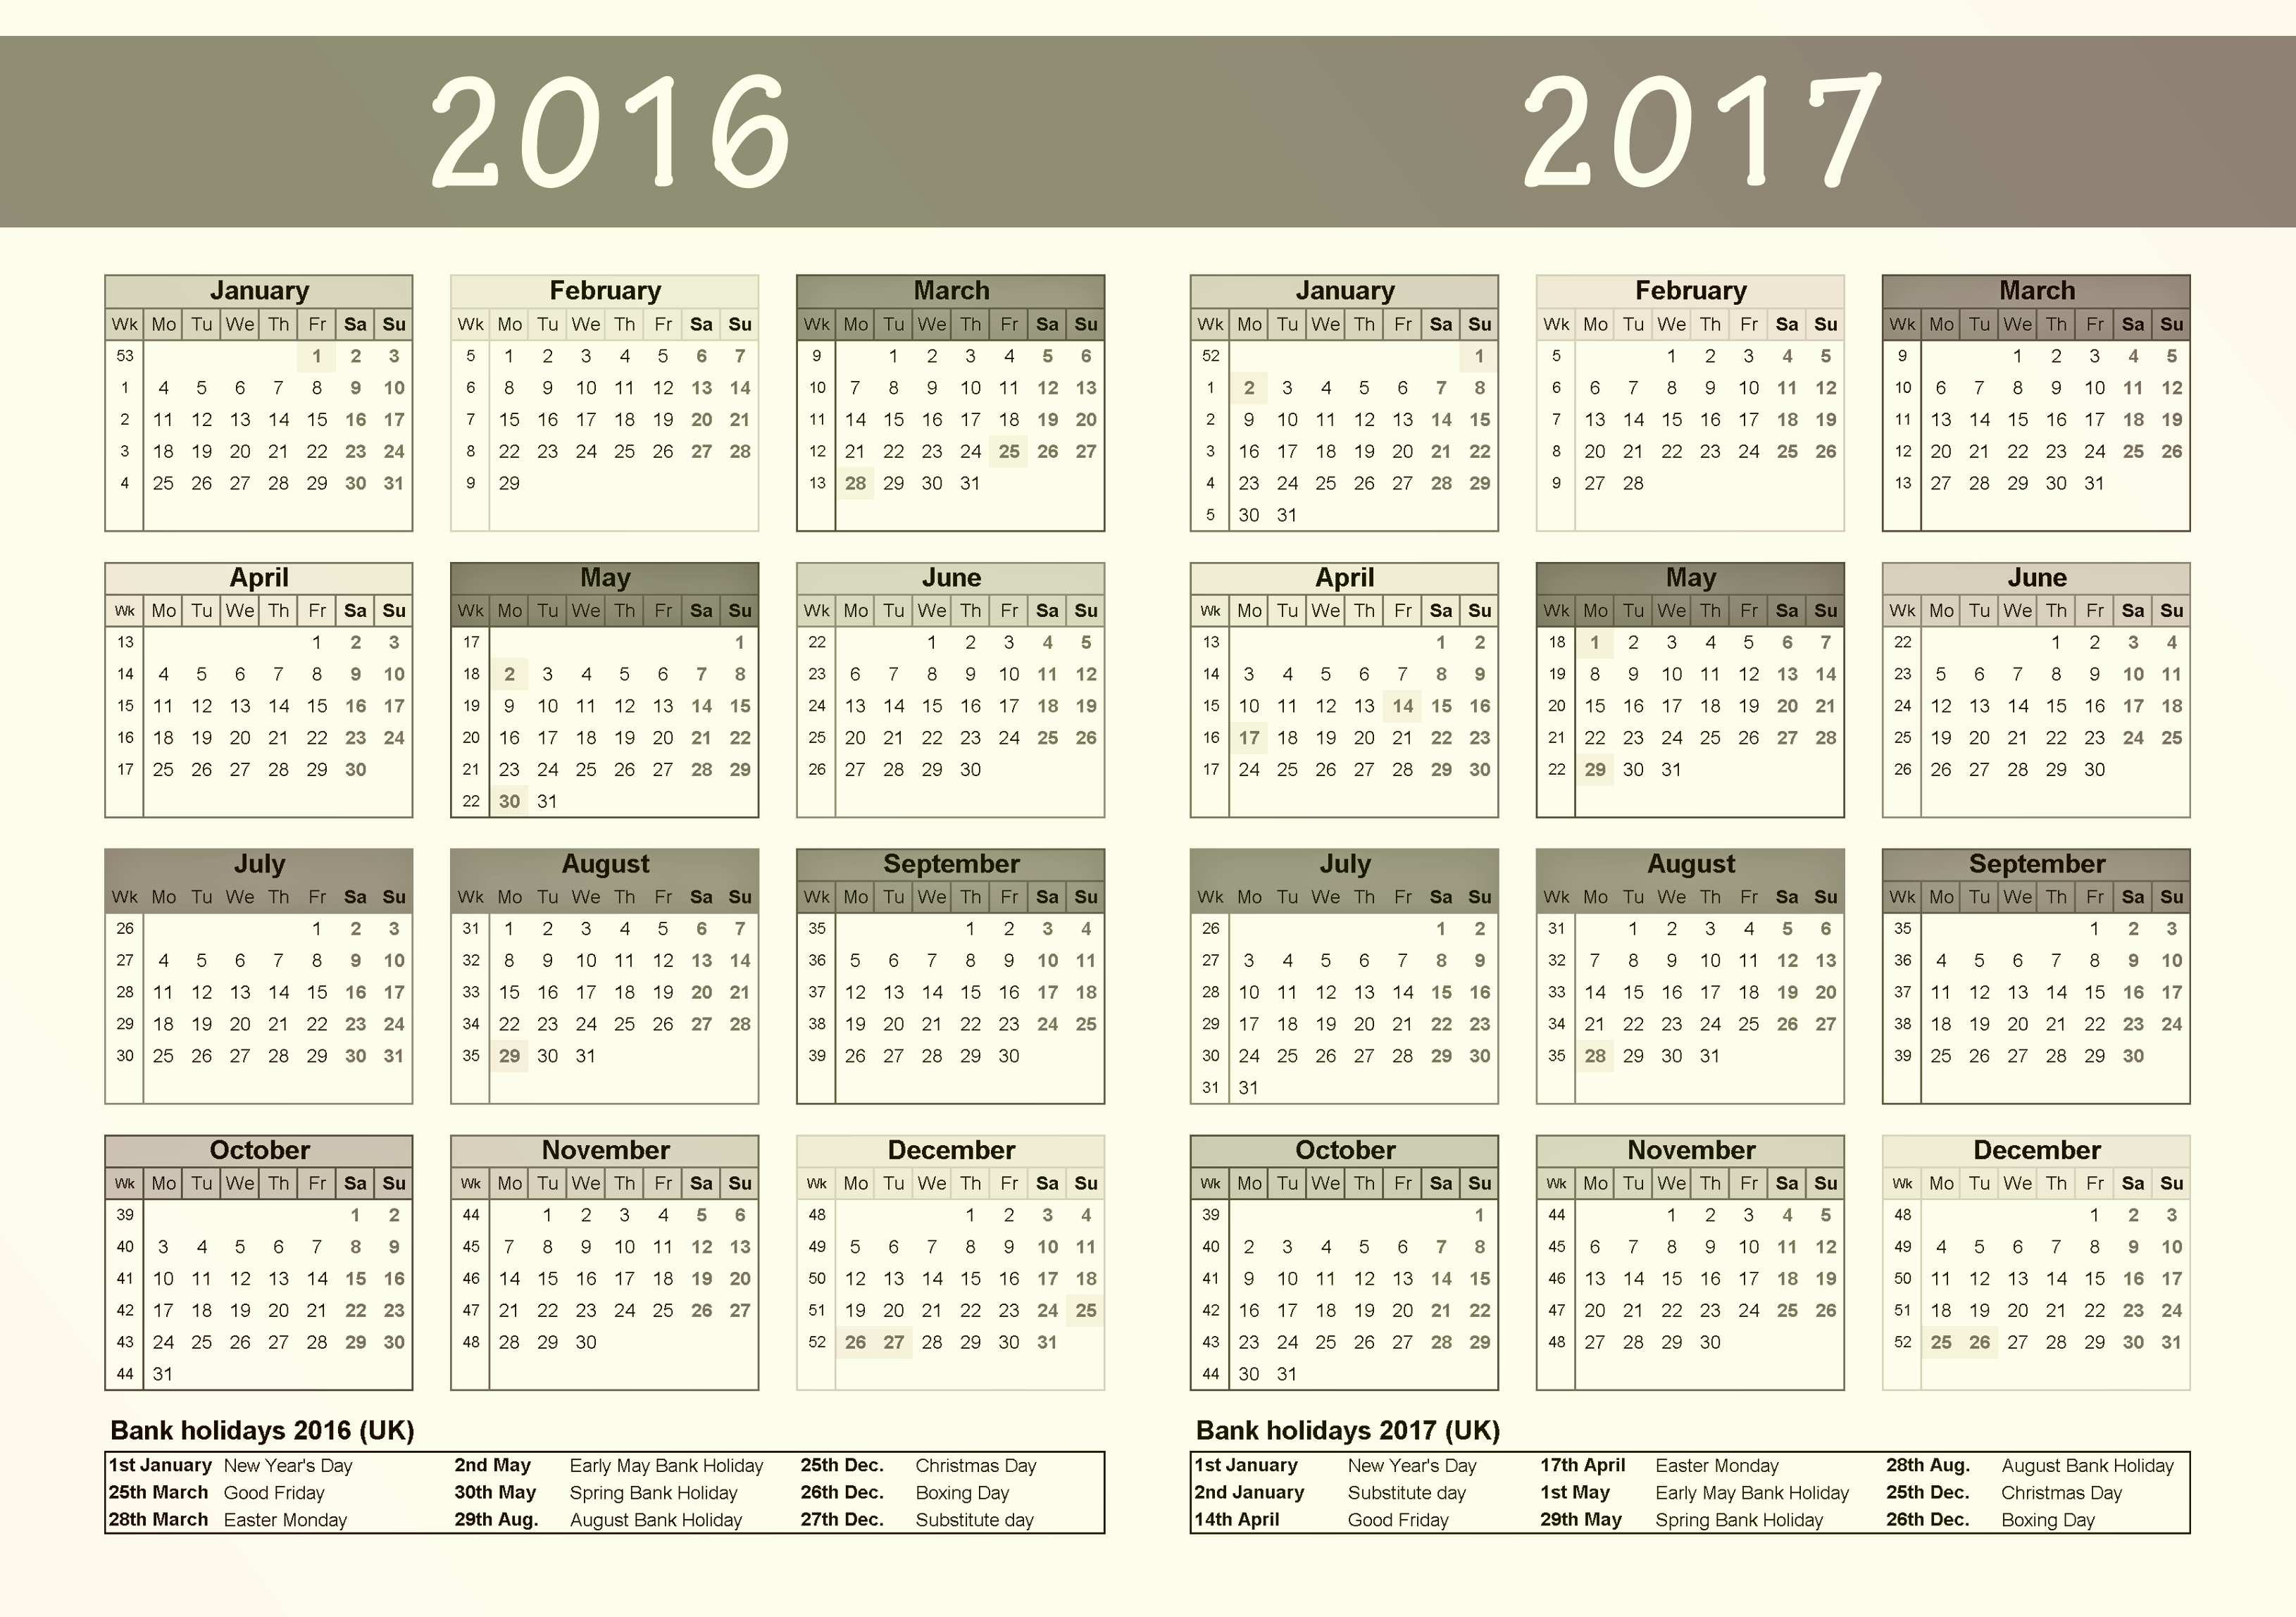 Free Download Of 2017 Calendar Luxury 2016 2017 Calendar